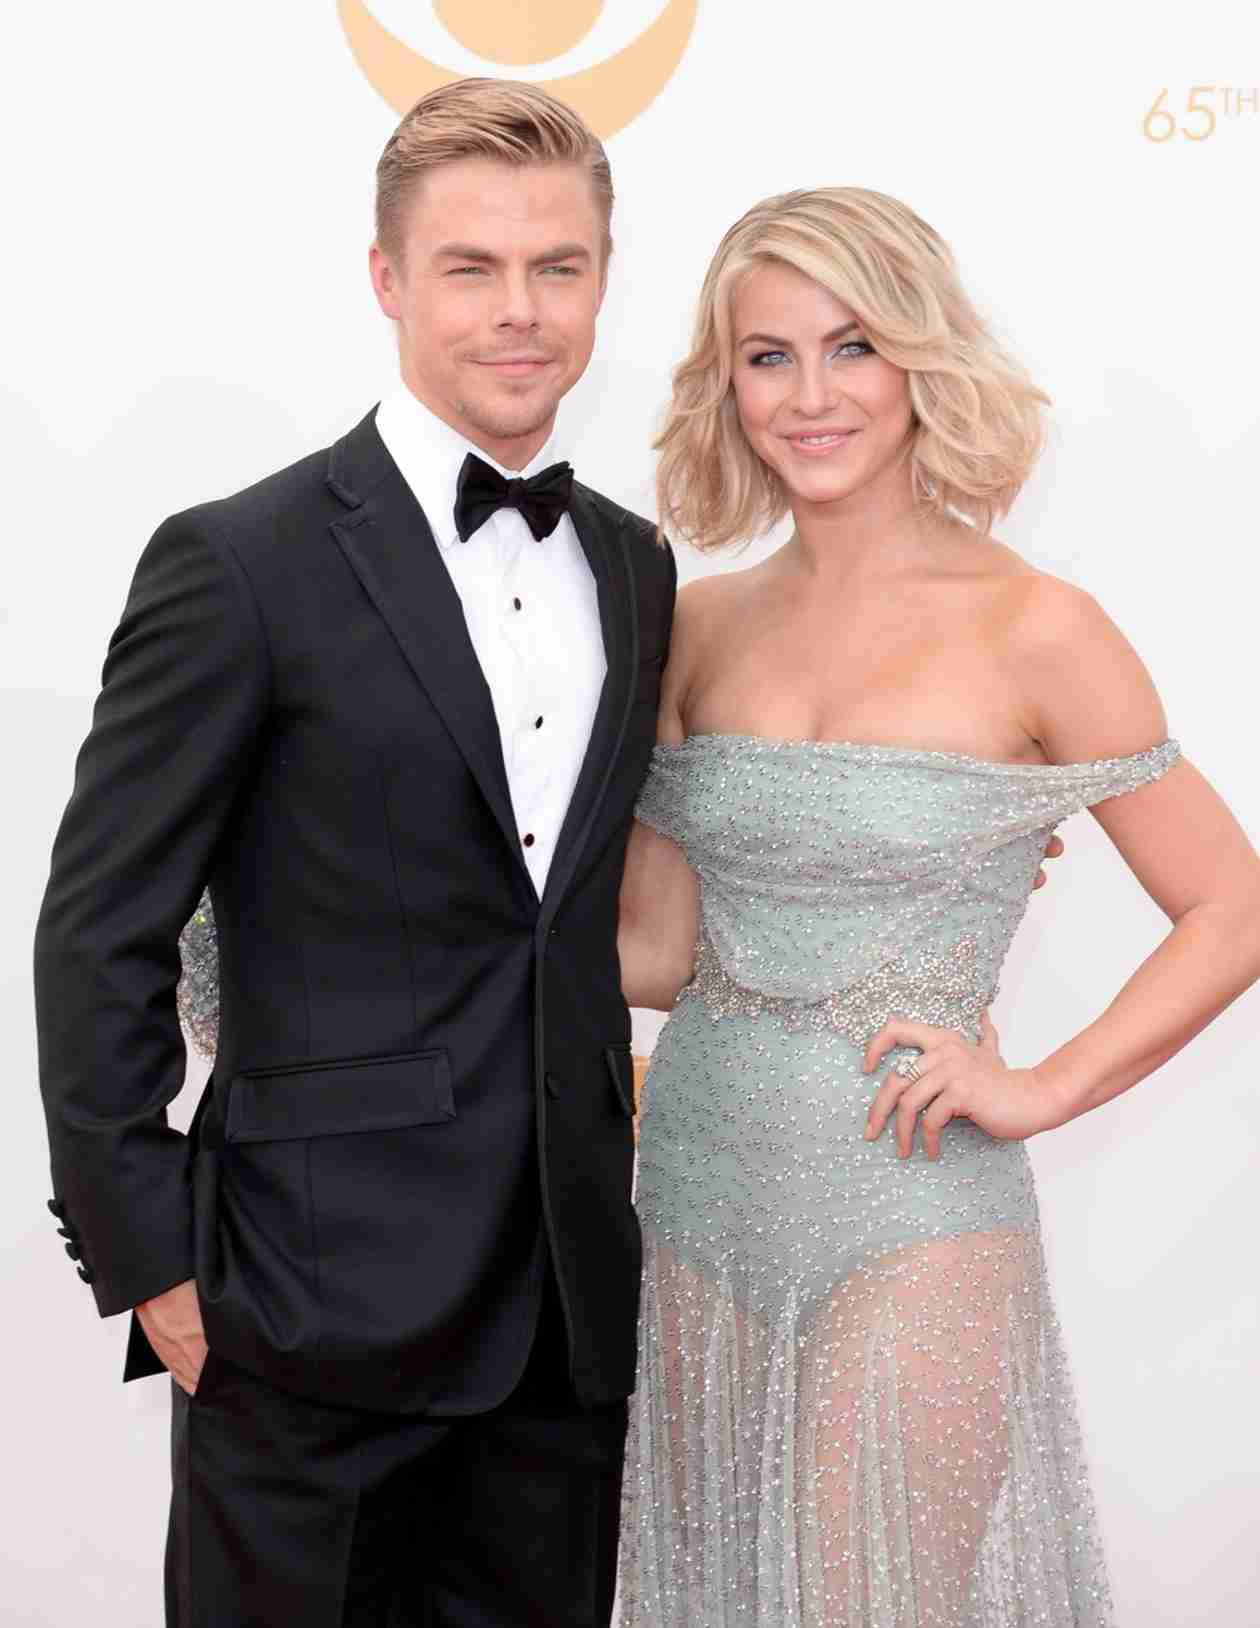 Julianne and Derek Hough Announce 2014 Move Live on Tour — See Summer Concert Dates!